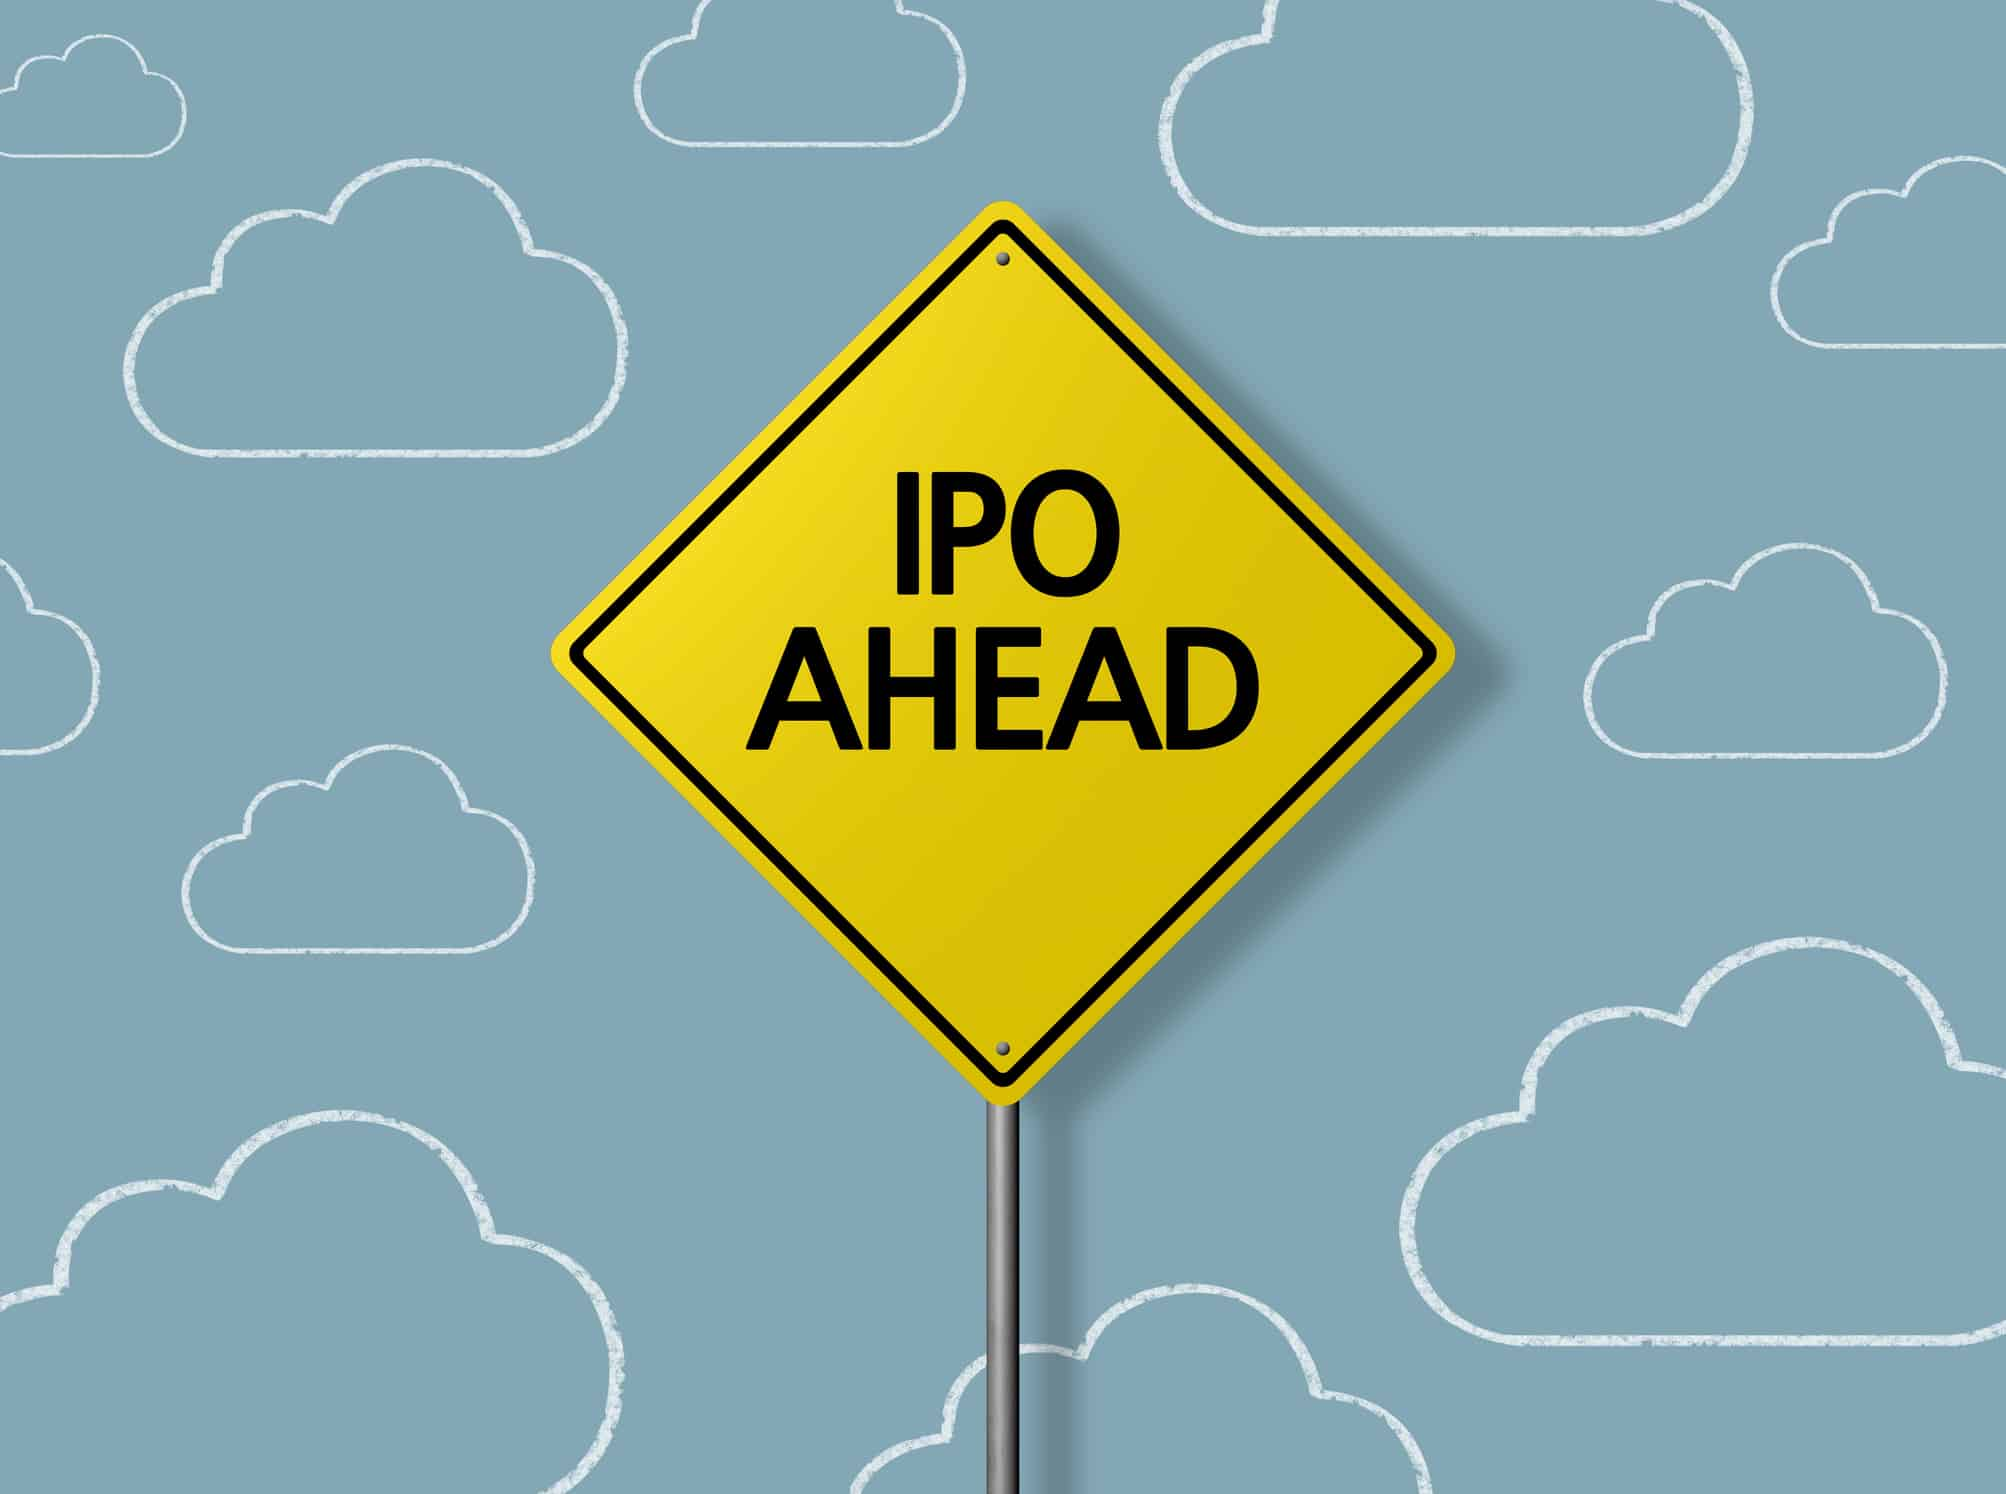 Best ipo to invest in november 2020